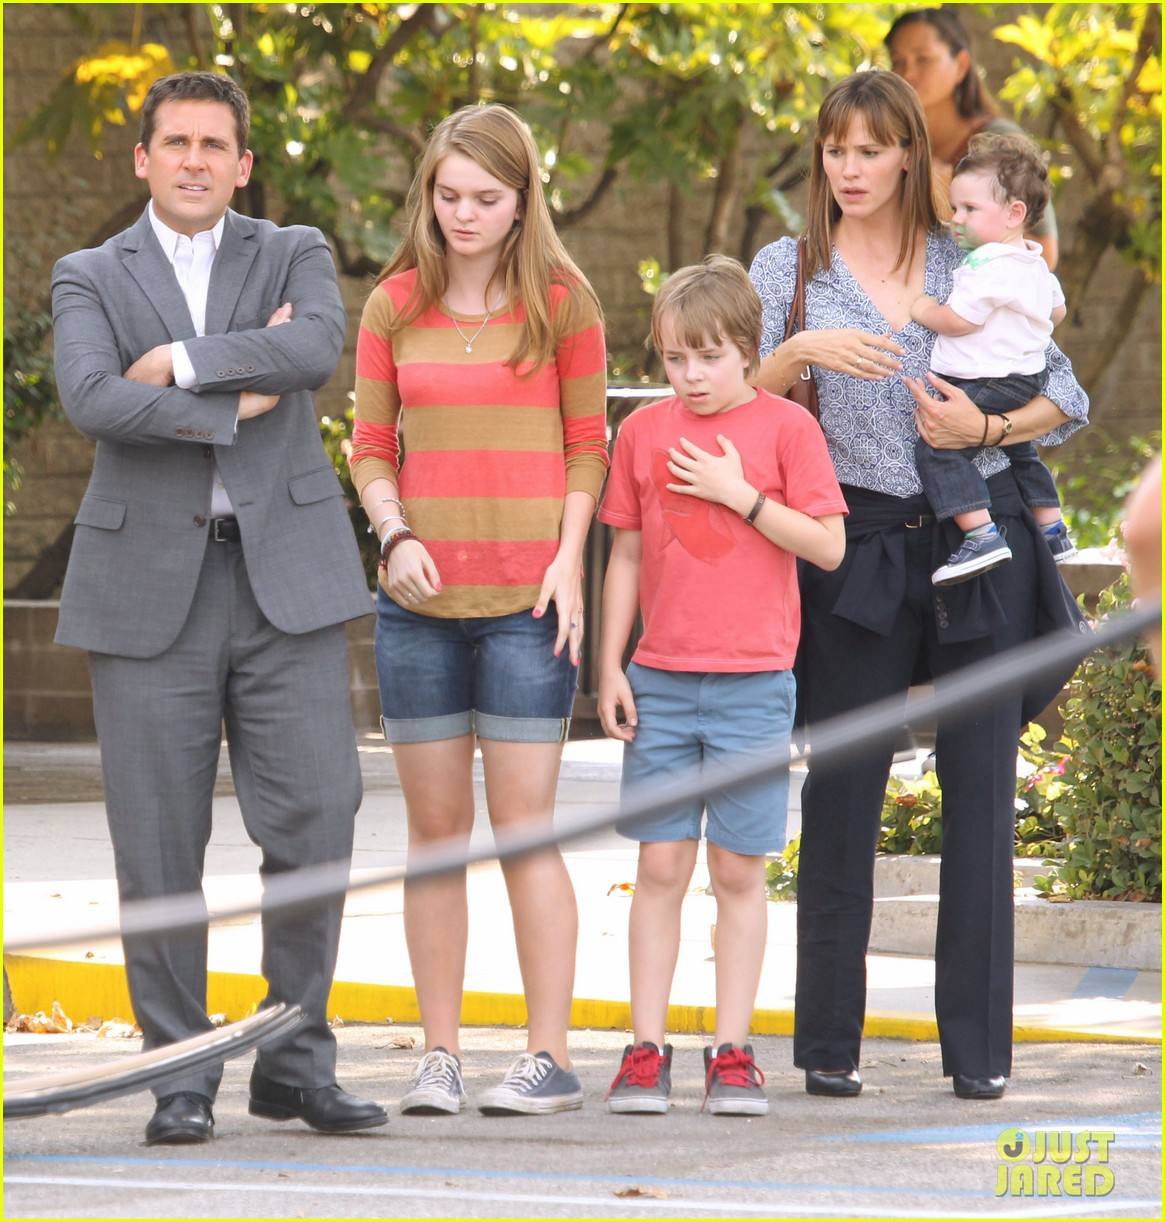 Full Sized Photo Of Jennifer Garner Steve Carell Family Freakout For Alexander 24 Photo 2938762 Just Jared She's so obsessed, in fact, that one of the stunning tracks on her debut album, my strange addiction. 2